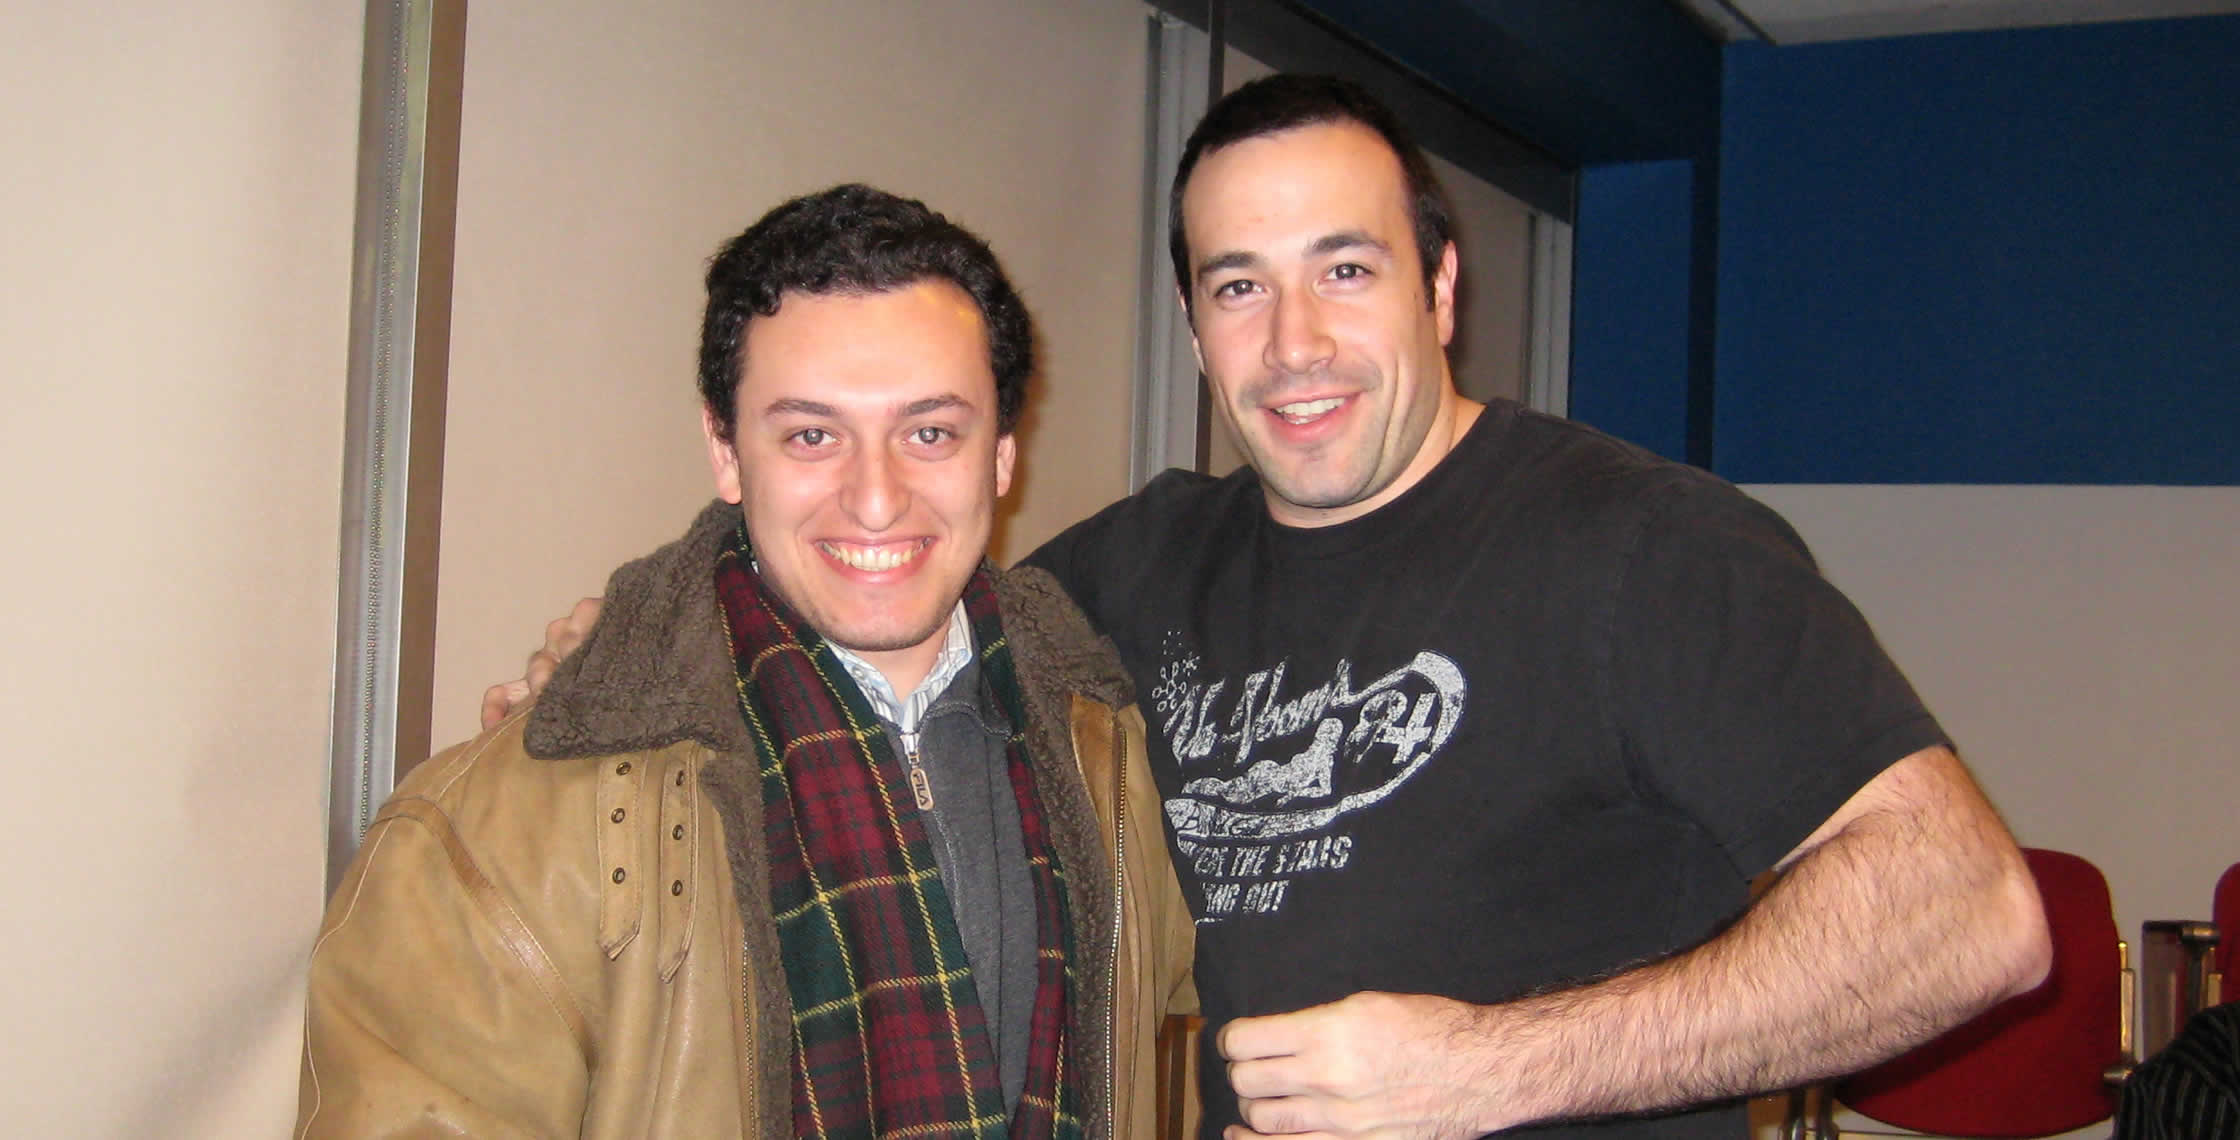 Ben Nadel at the New York ColdFusion User Group (Feb. 2008) with: Dmitriy Goltseker